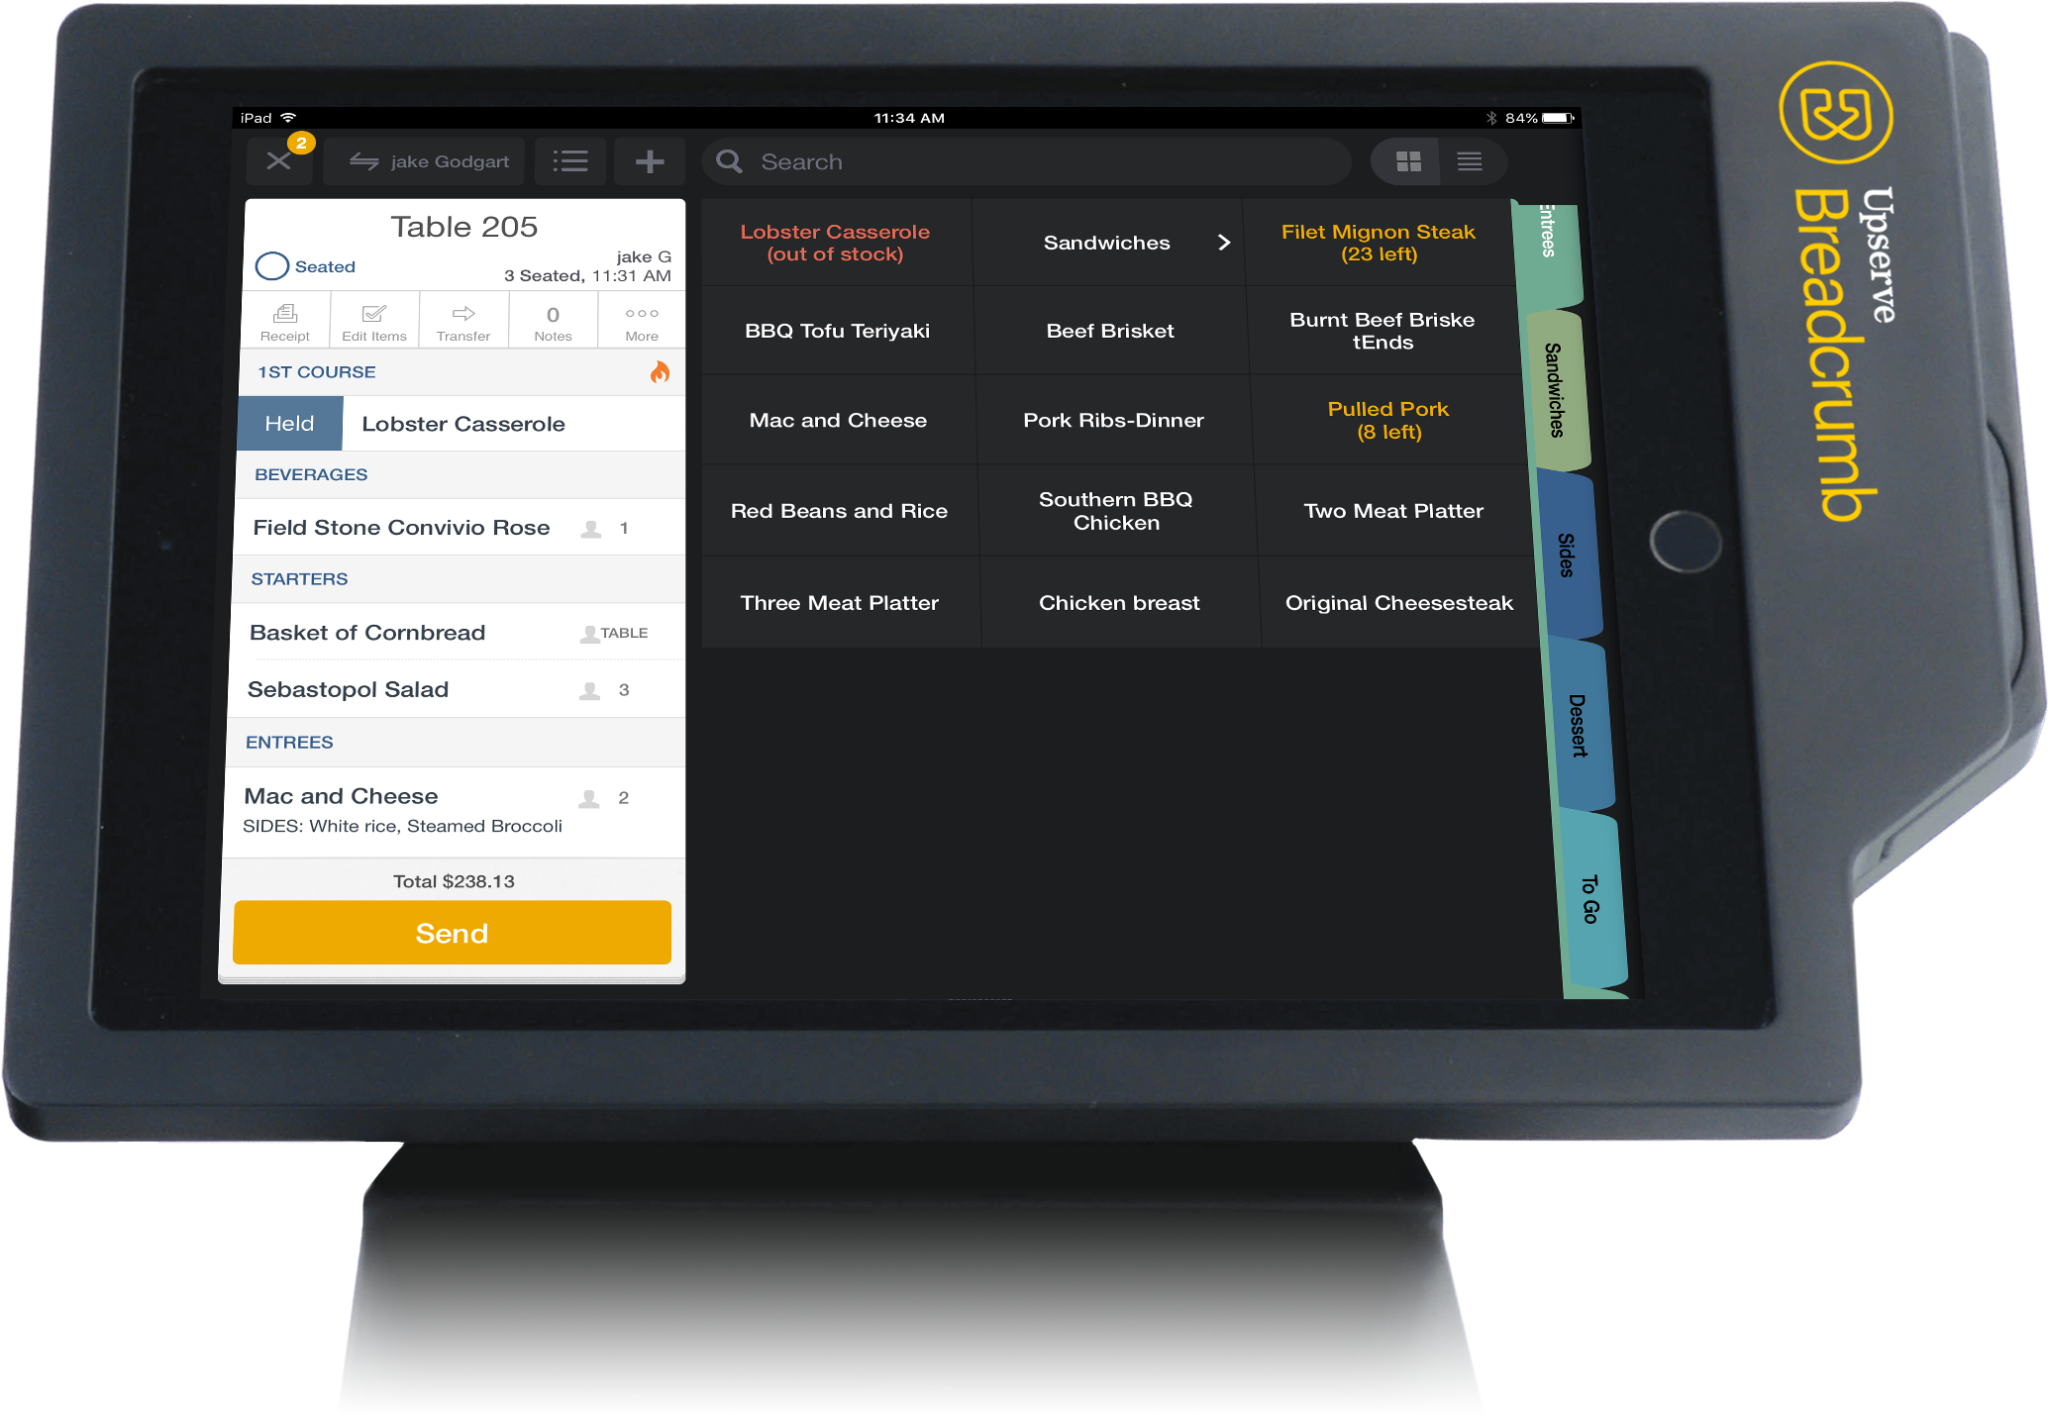 A simple and intuitive restaurant menu set up on Breadcrumb POS